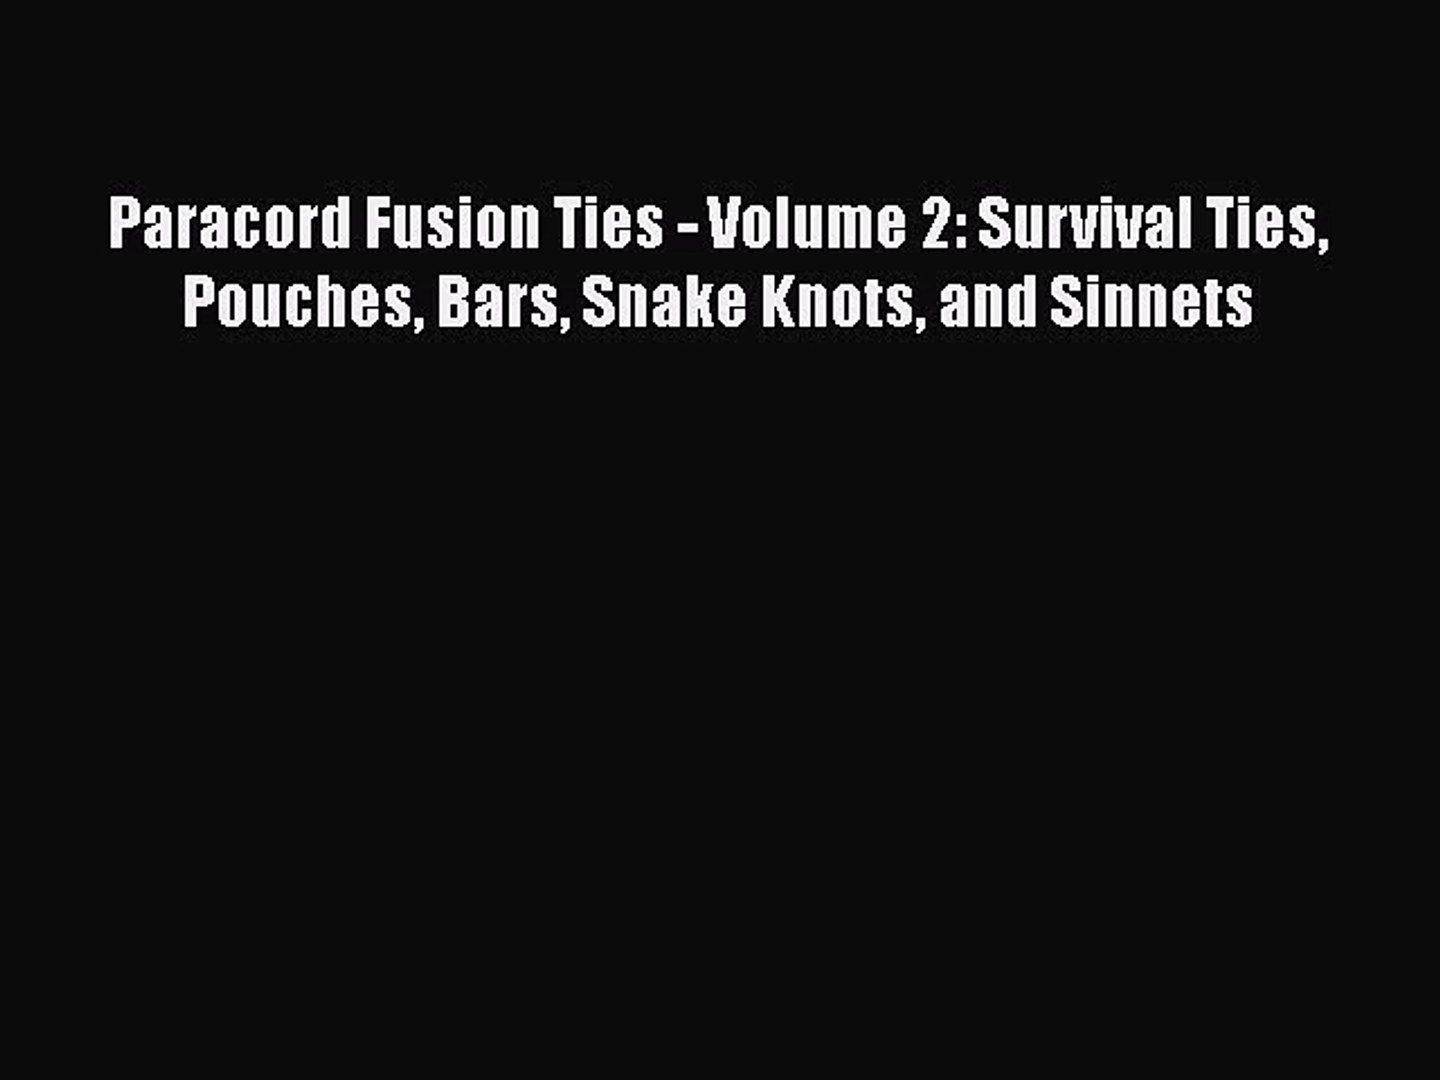 Paracord Fusion Ties - Volume 2: Survival Ties Pouches Bars Snake Knots and Sinnets Free Download